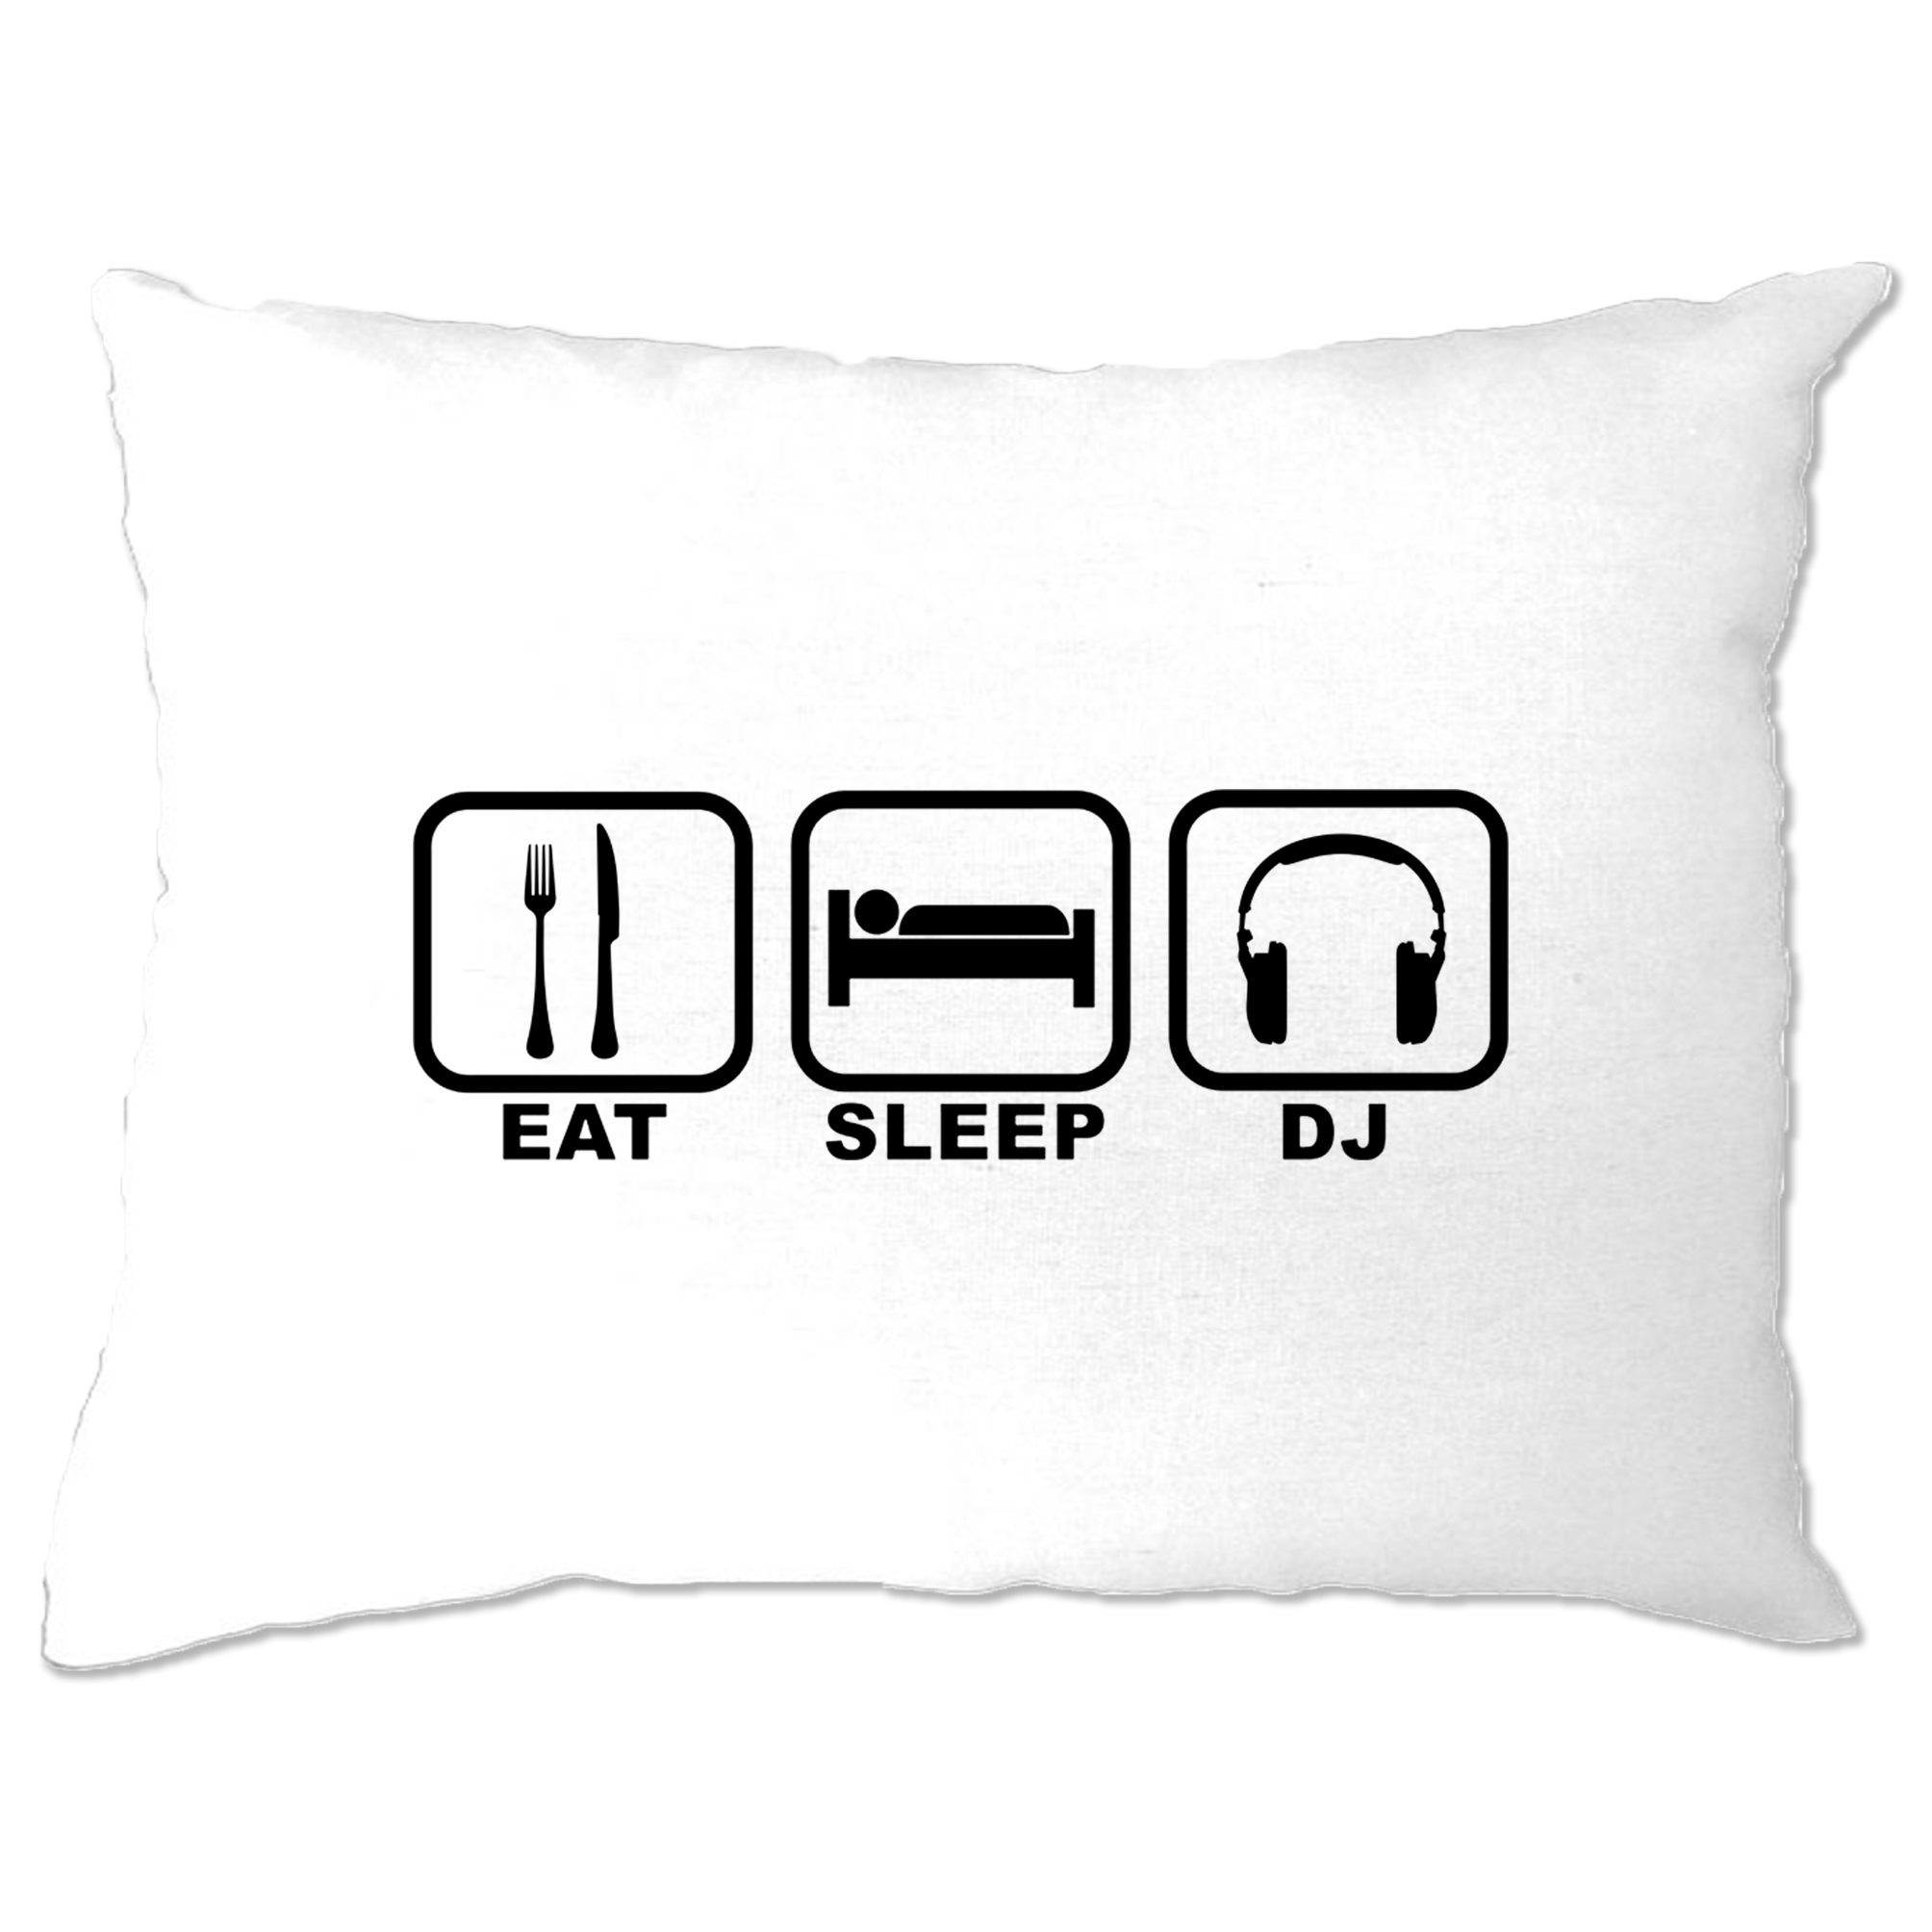 Then DJ Symbols Party Clubbing Techno Music Sleep Novelty T Shirt Eat